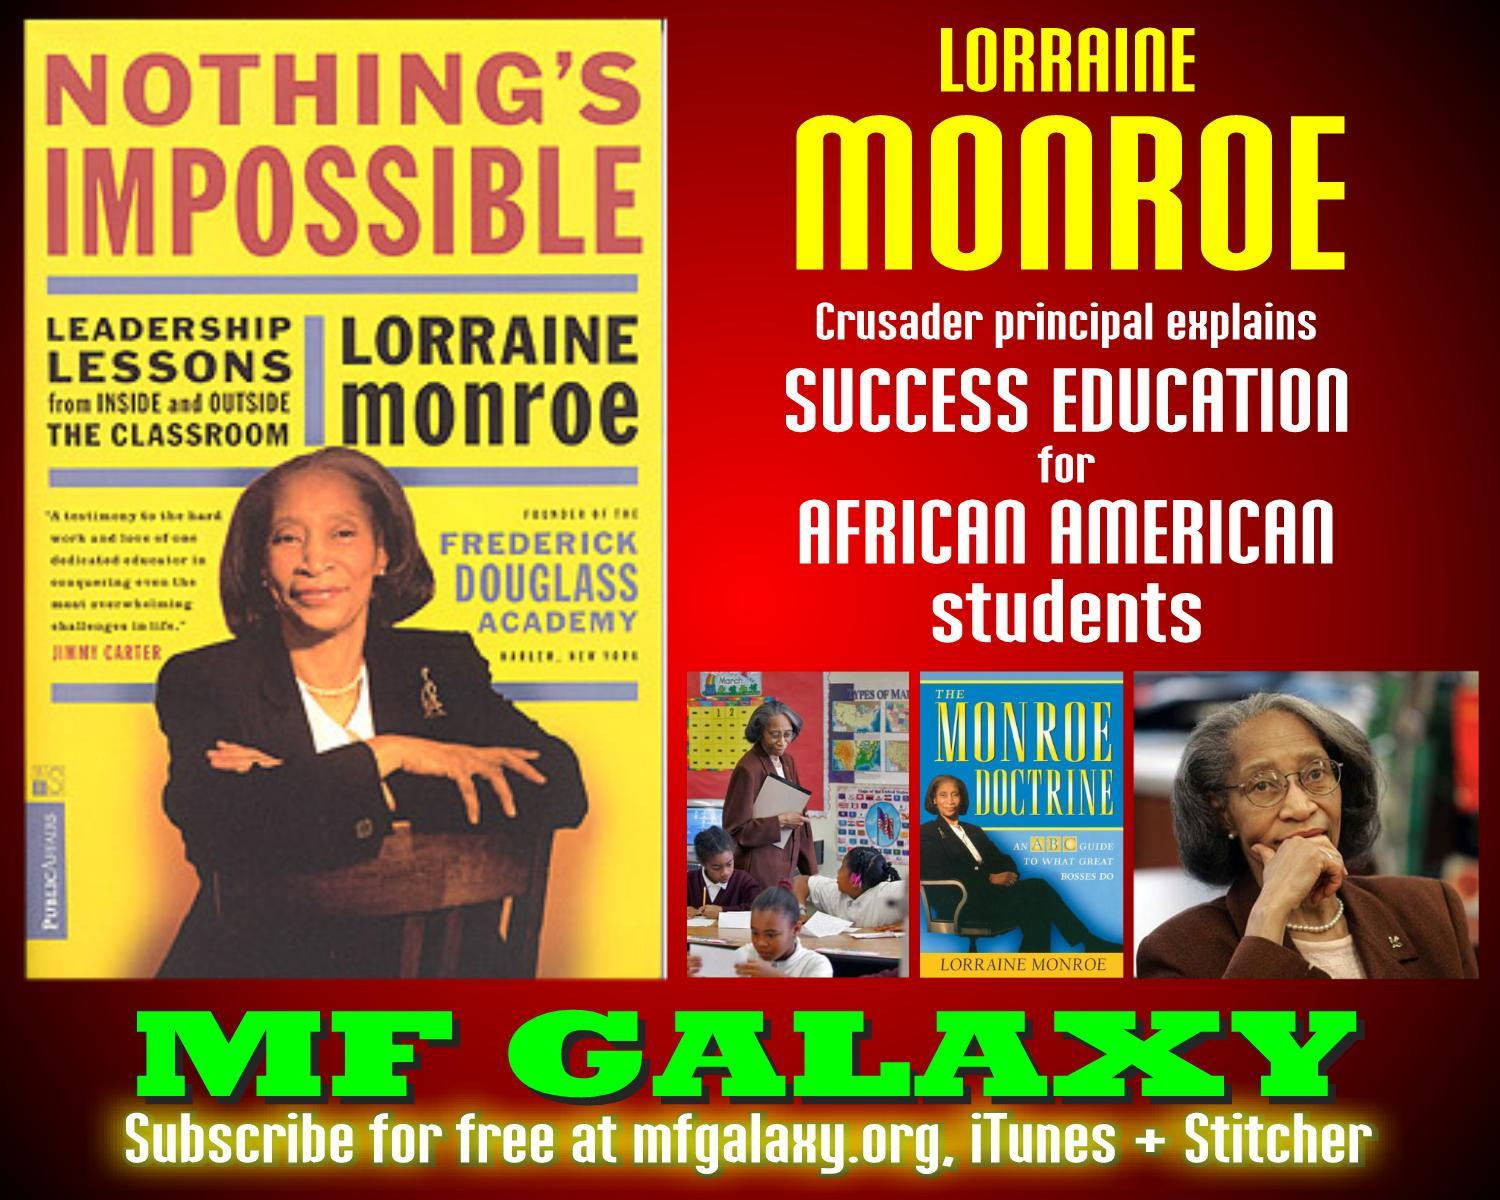 leadership qualities of lorraine monroe If searched for a ebook by lorraine monroe nothing's impossible: leadership lessons from inside and outside the classroom in pdf format, then you have come on to the correct site.